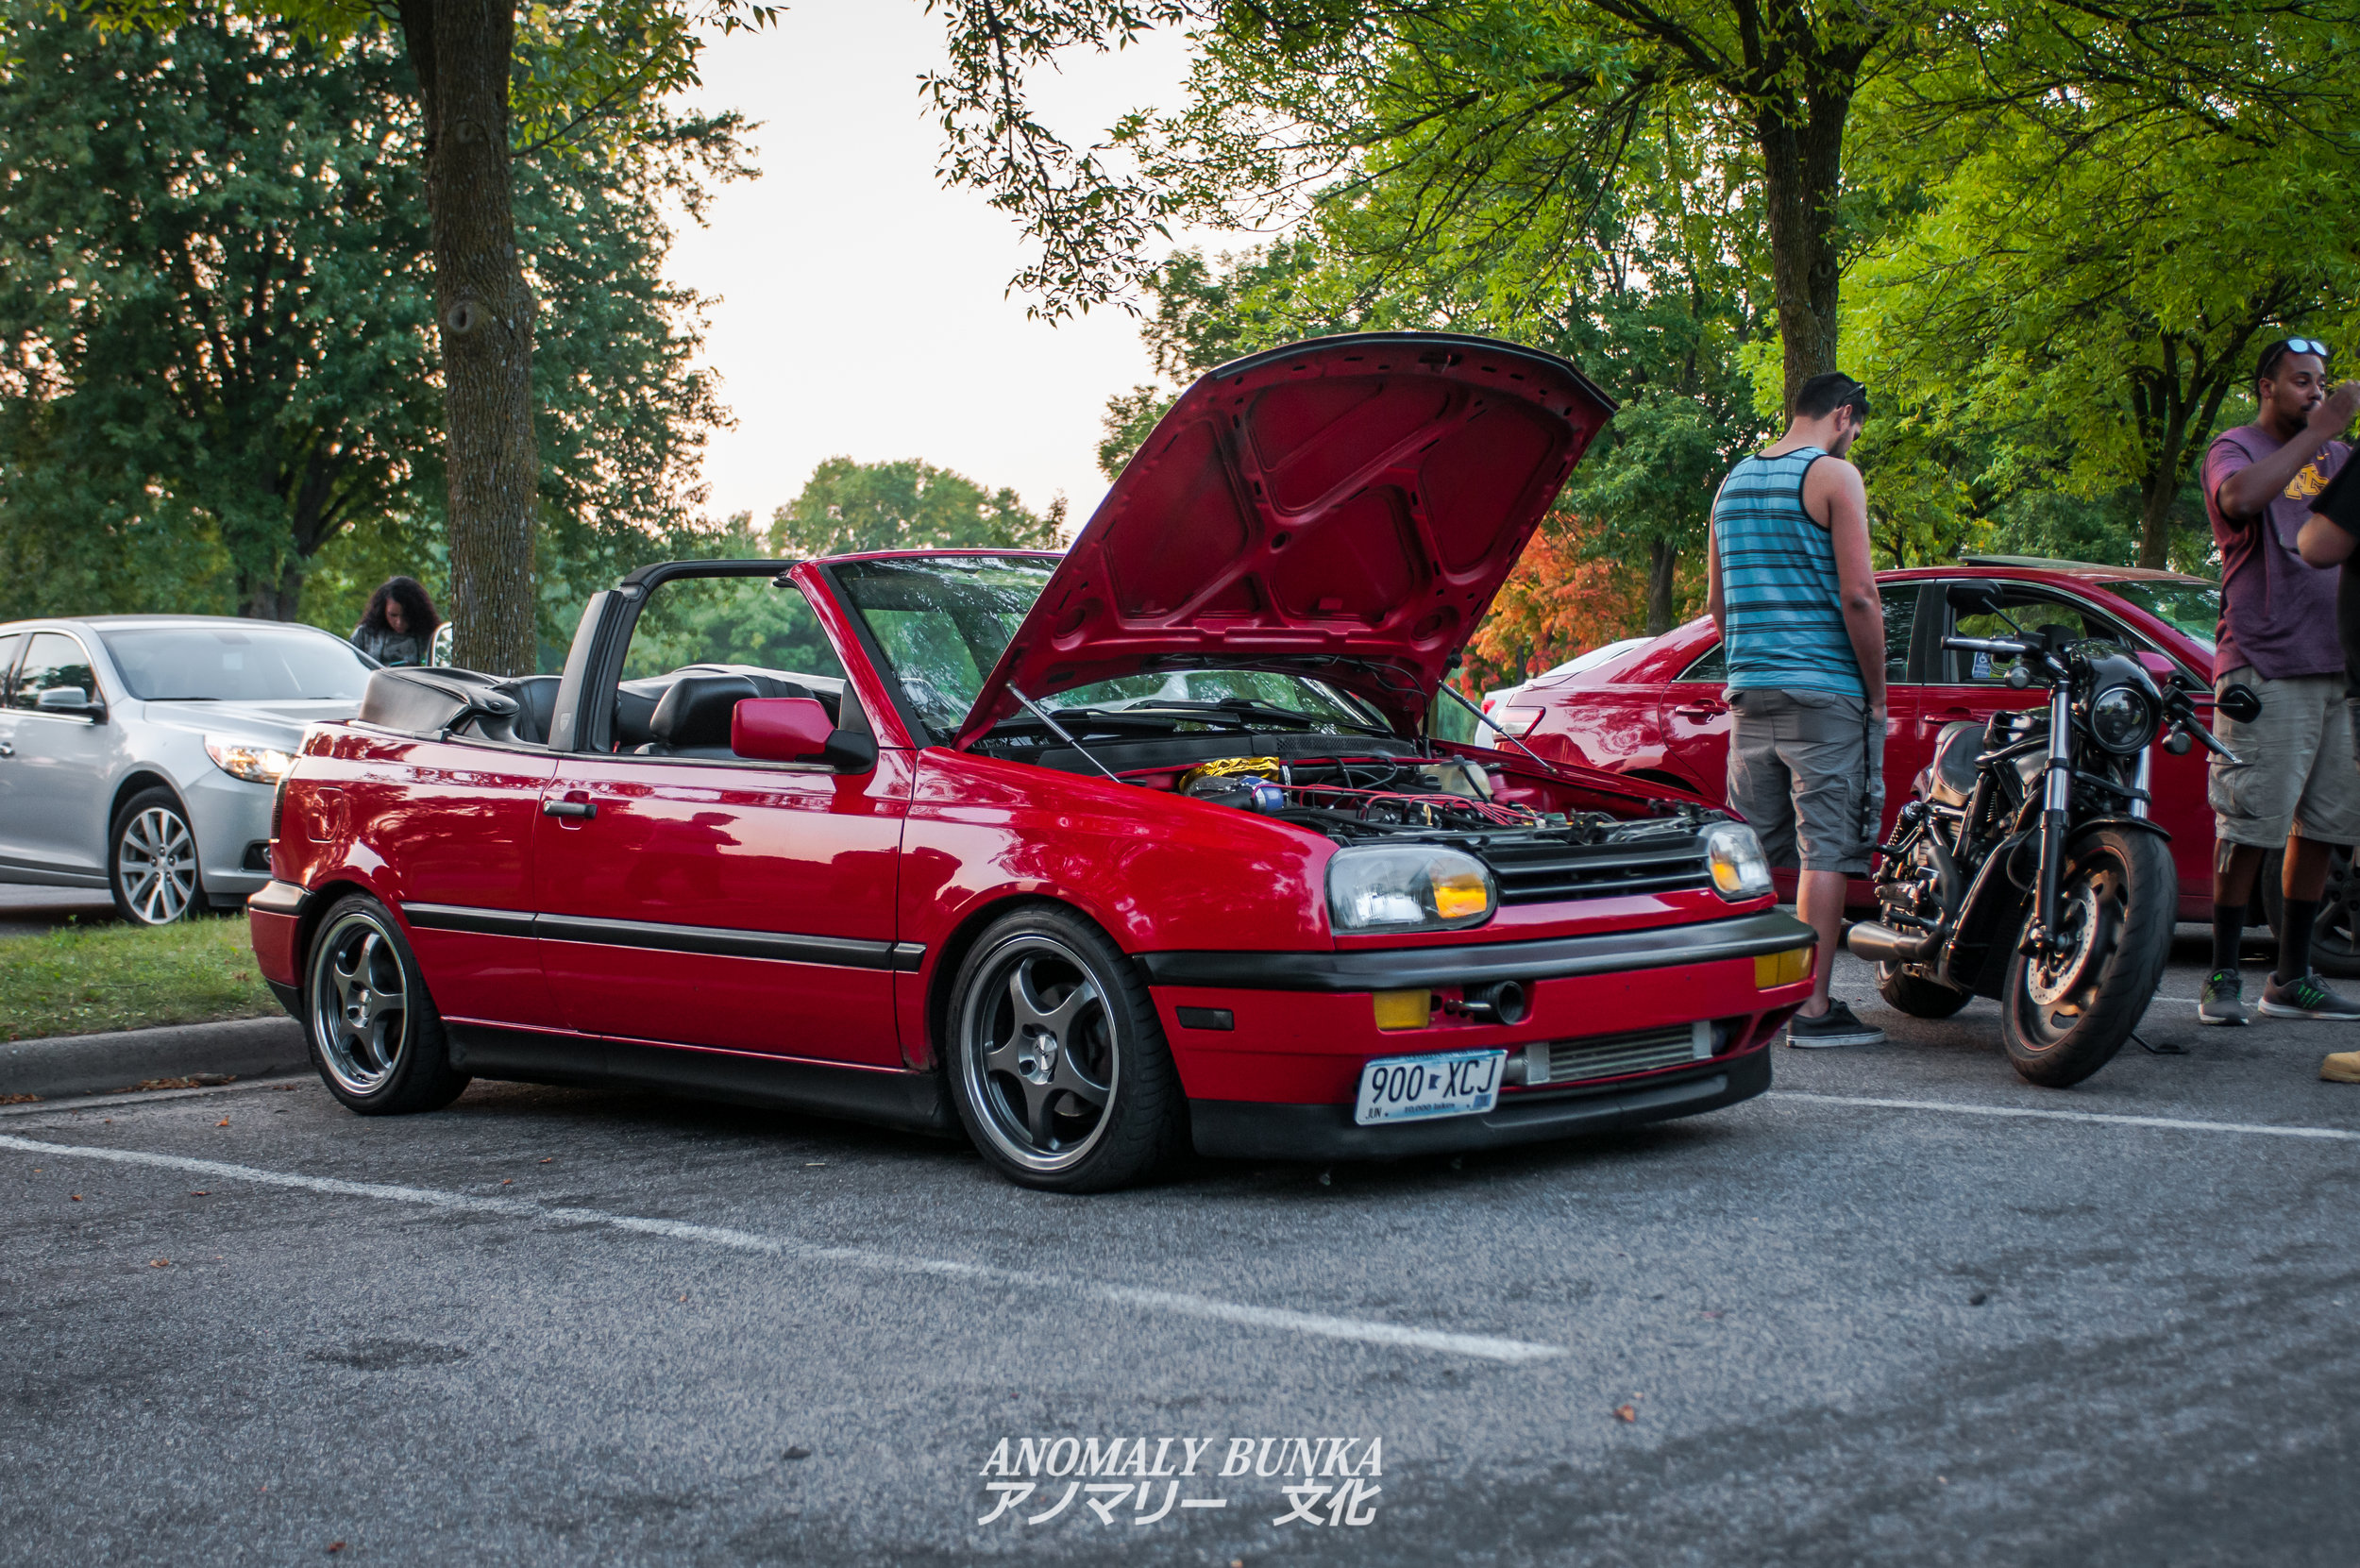 Cool VR-T swapped Cabrio